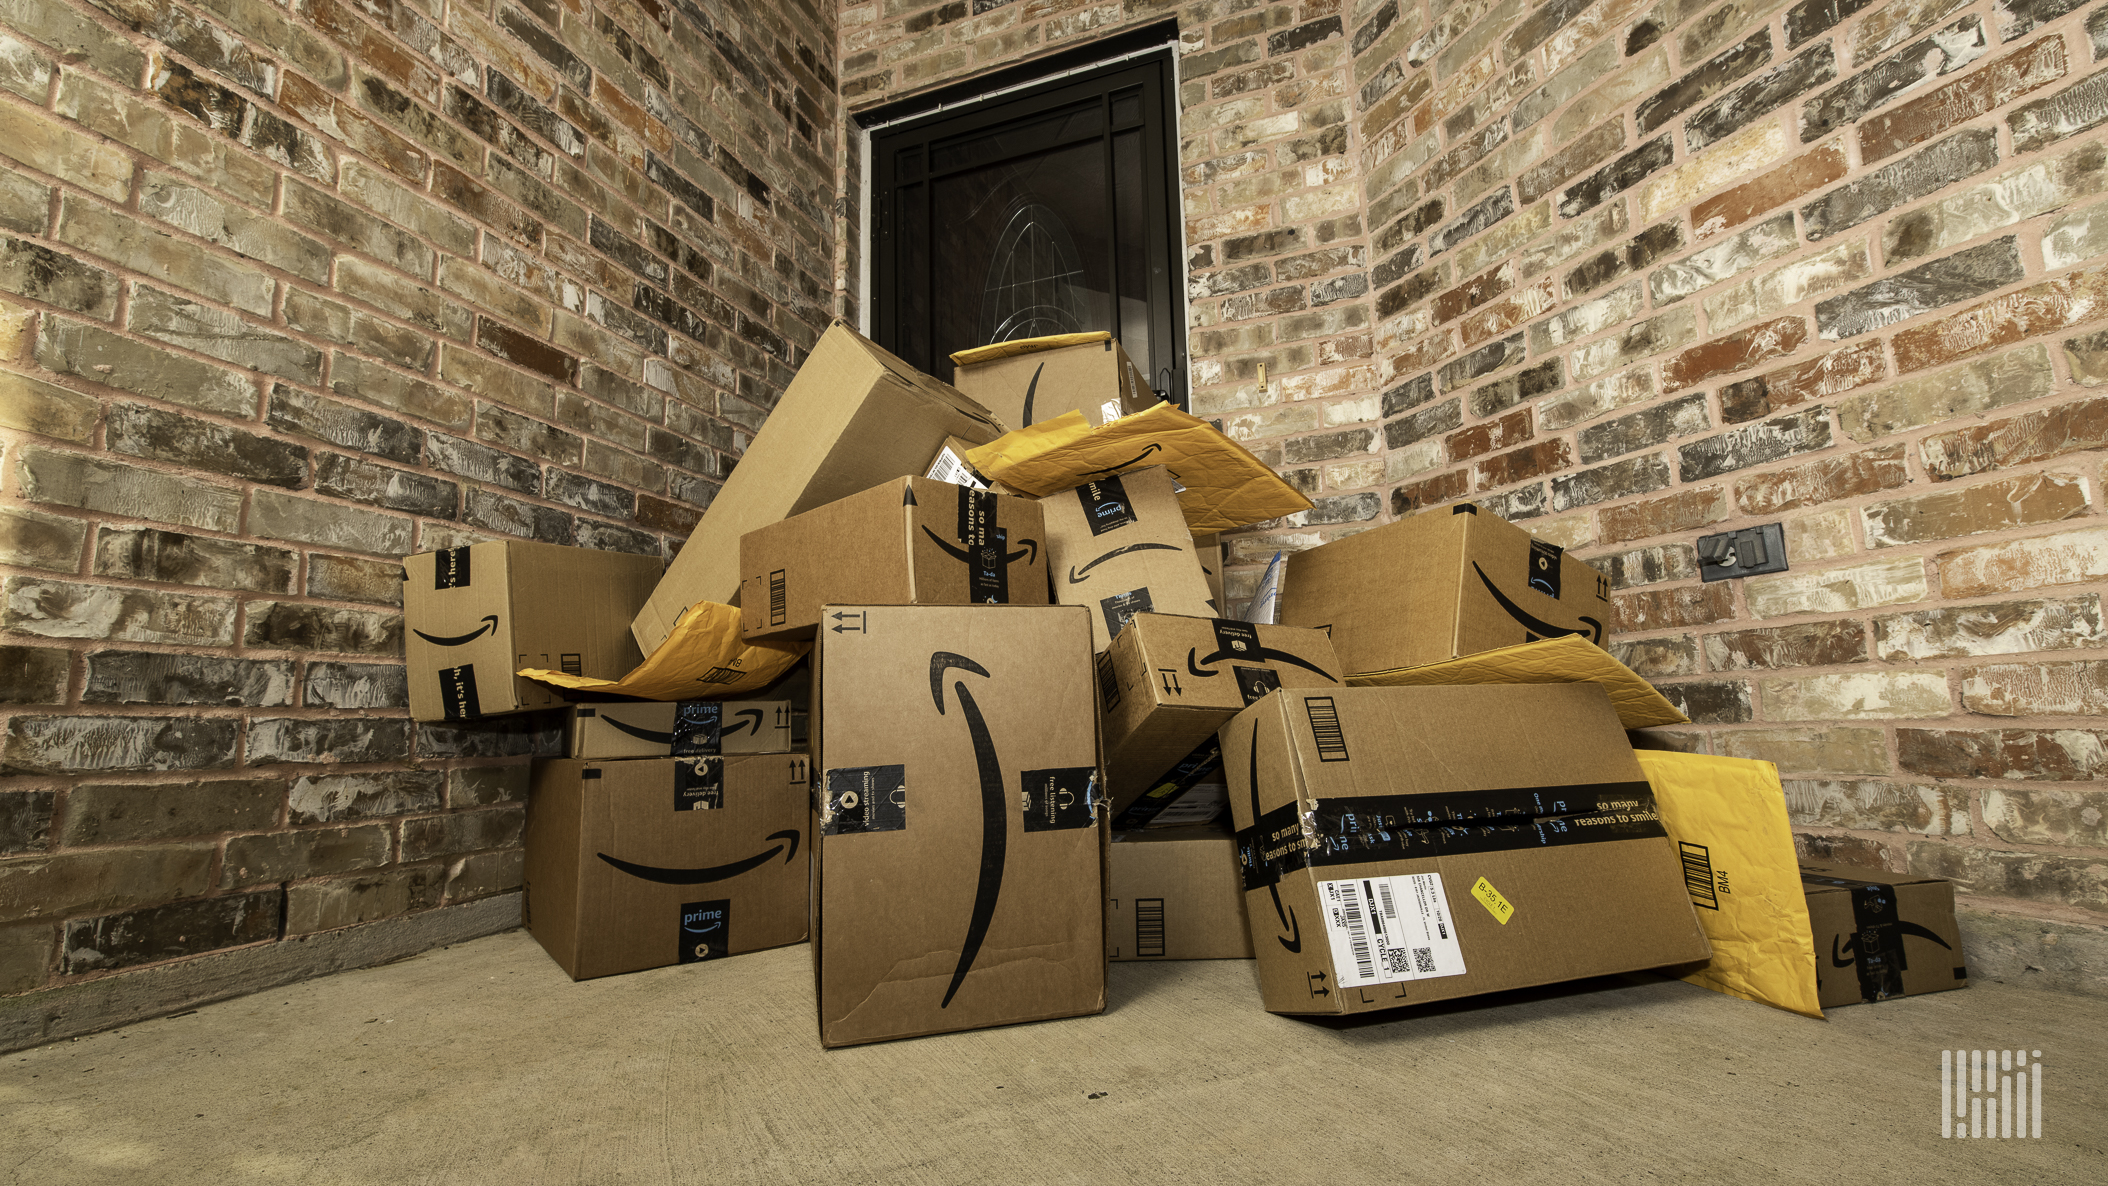 Consumers call for more sustainable packaging and shipping in e-commerce.